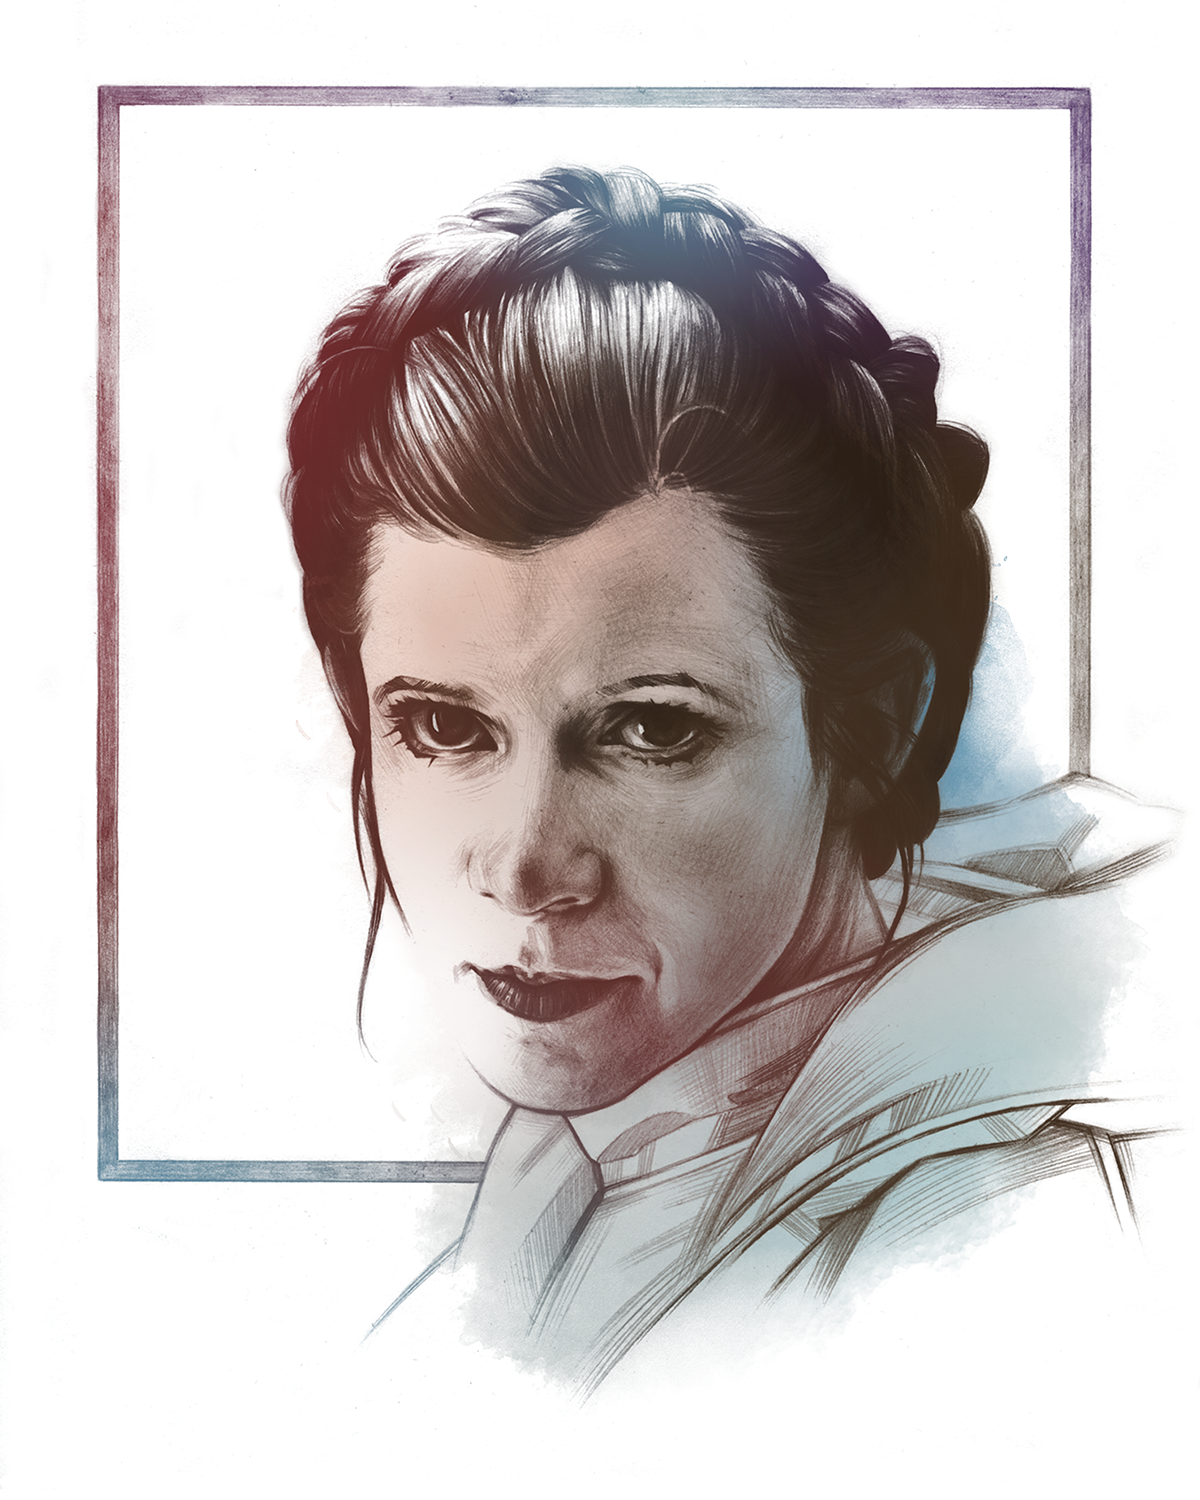 leia small.png